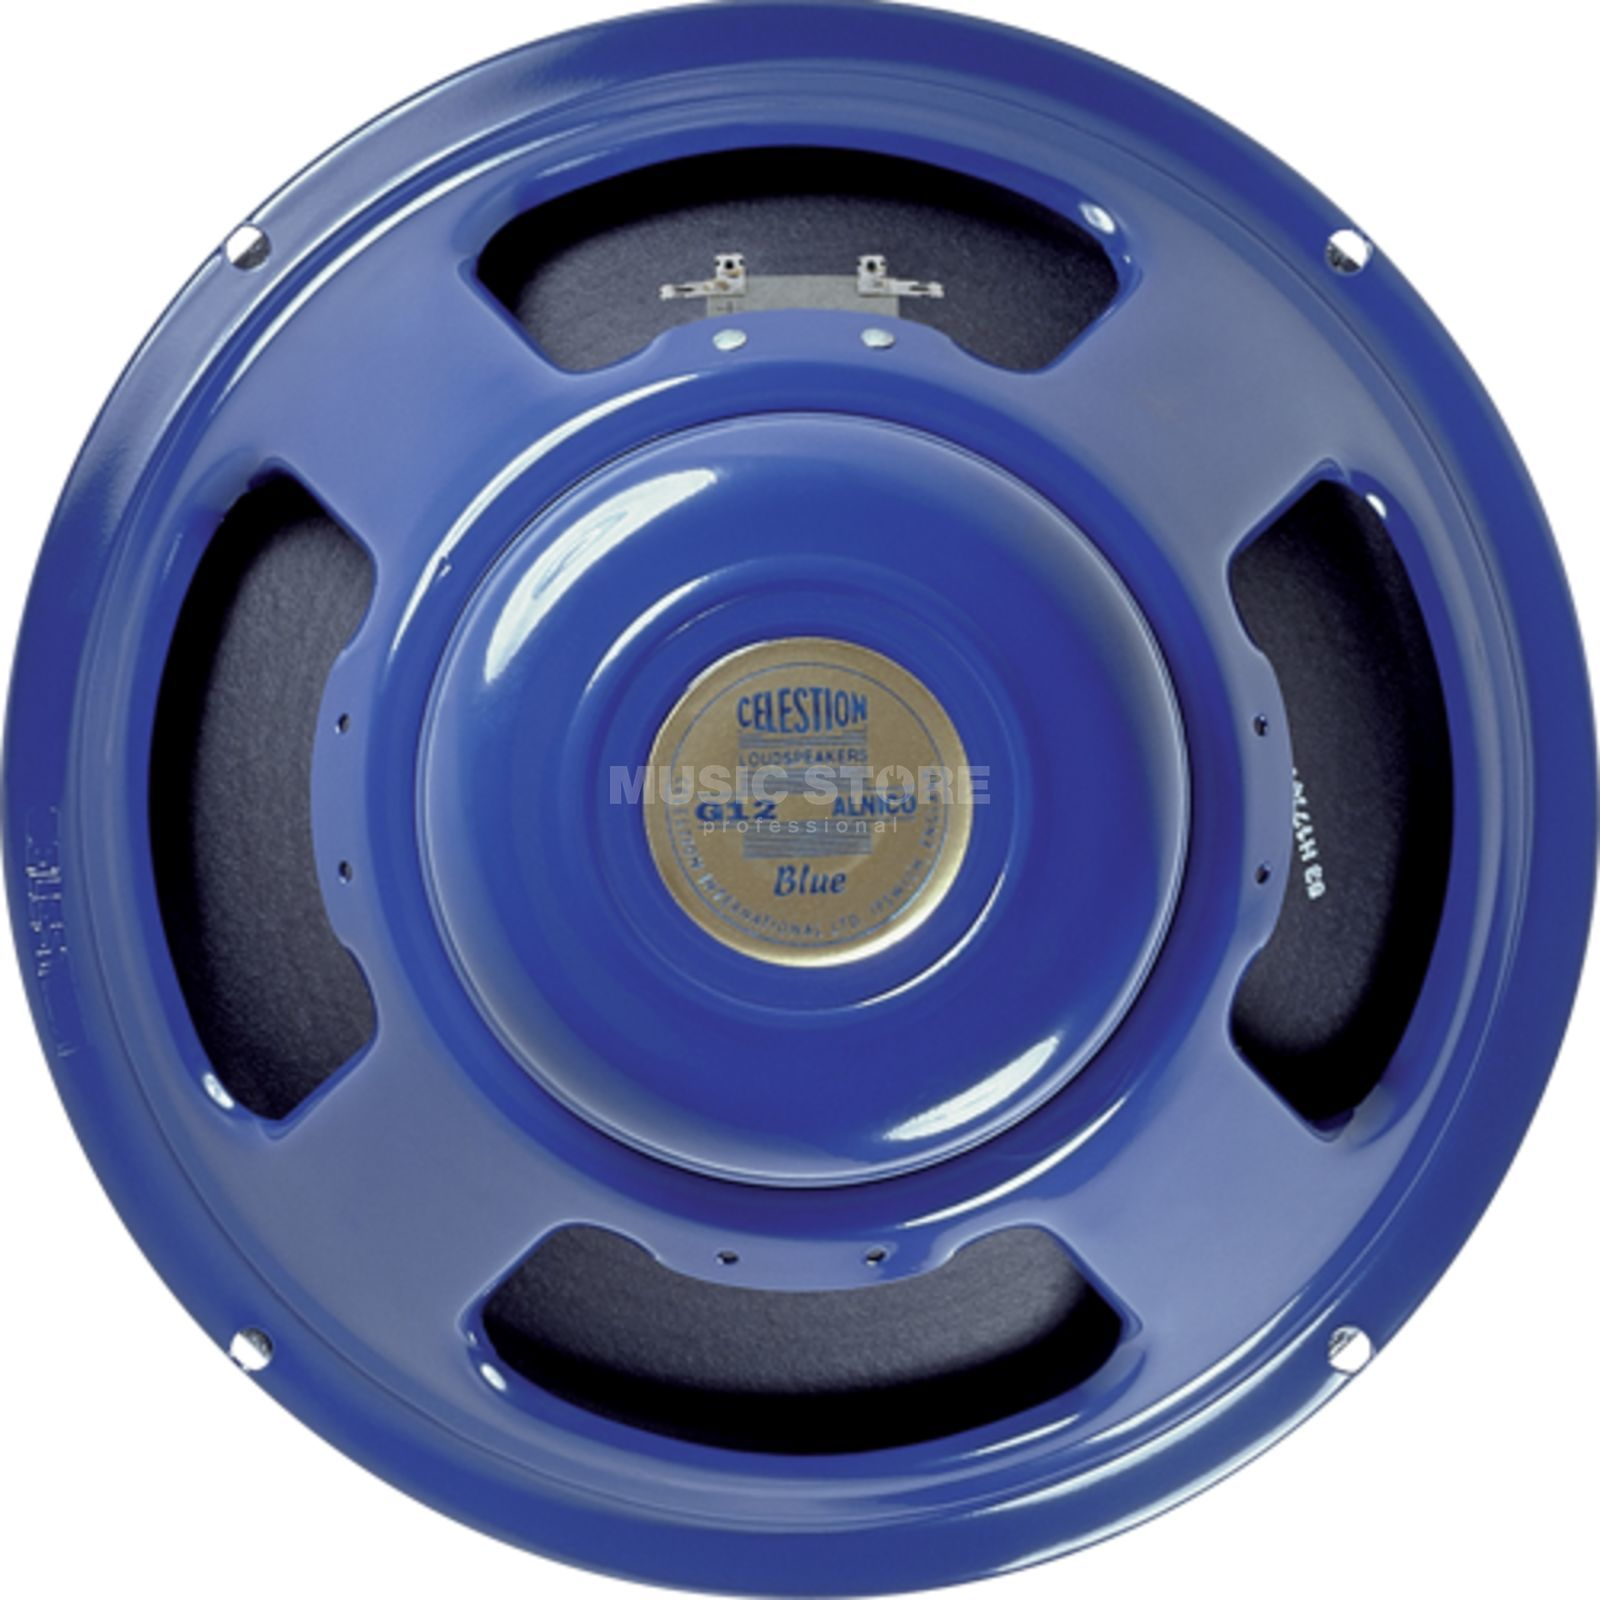 "Celestion Celestion Blue 12"" Speaker 8 Ohm Alnico Series Produktbild"